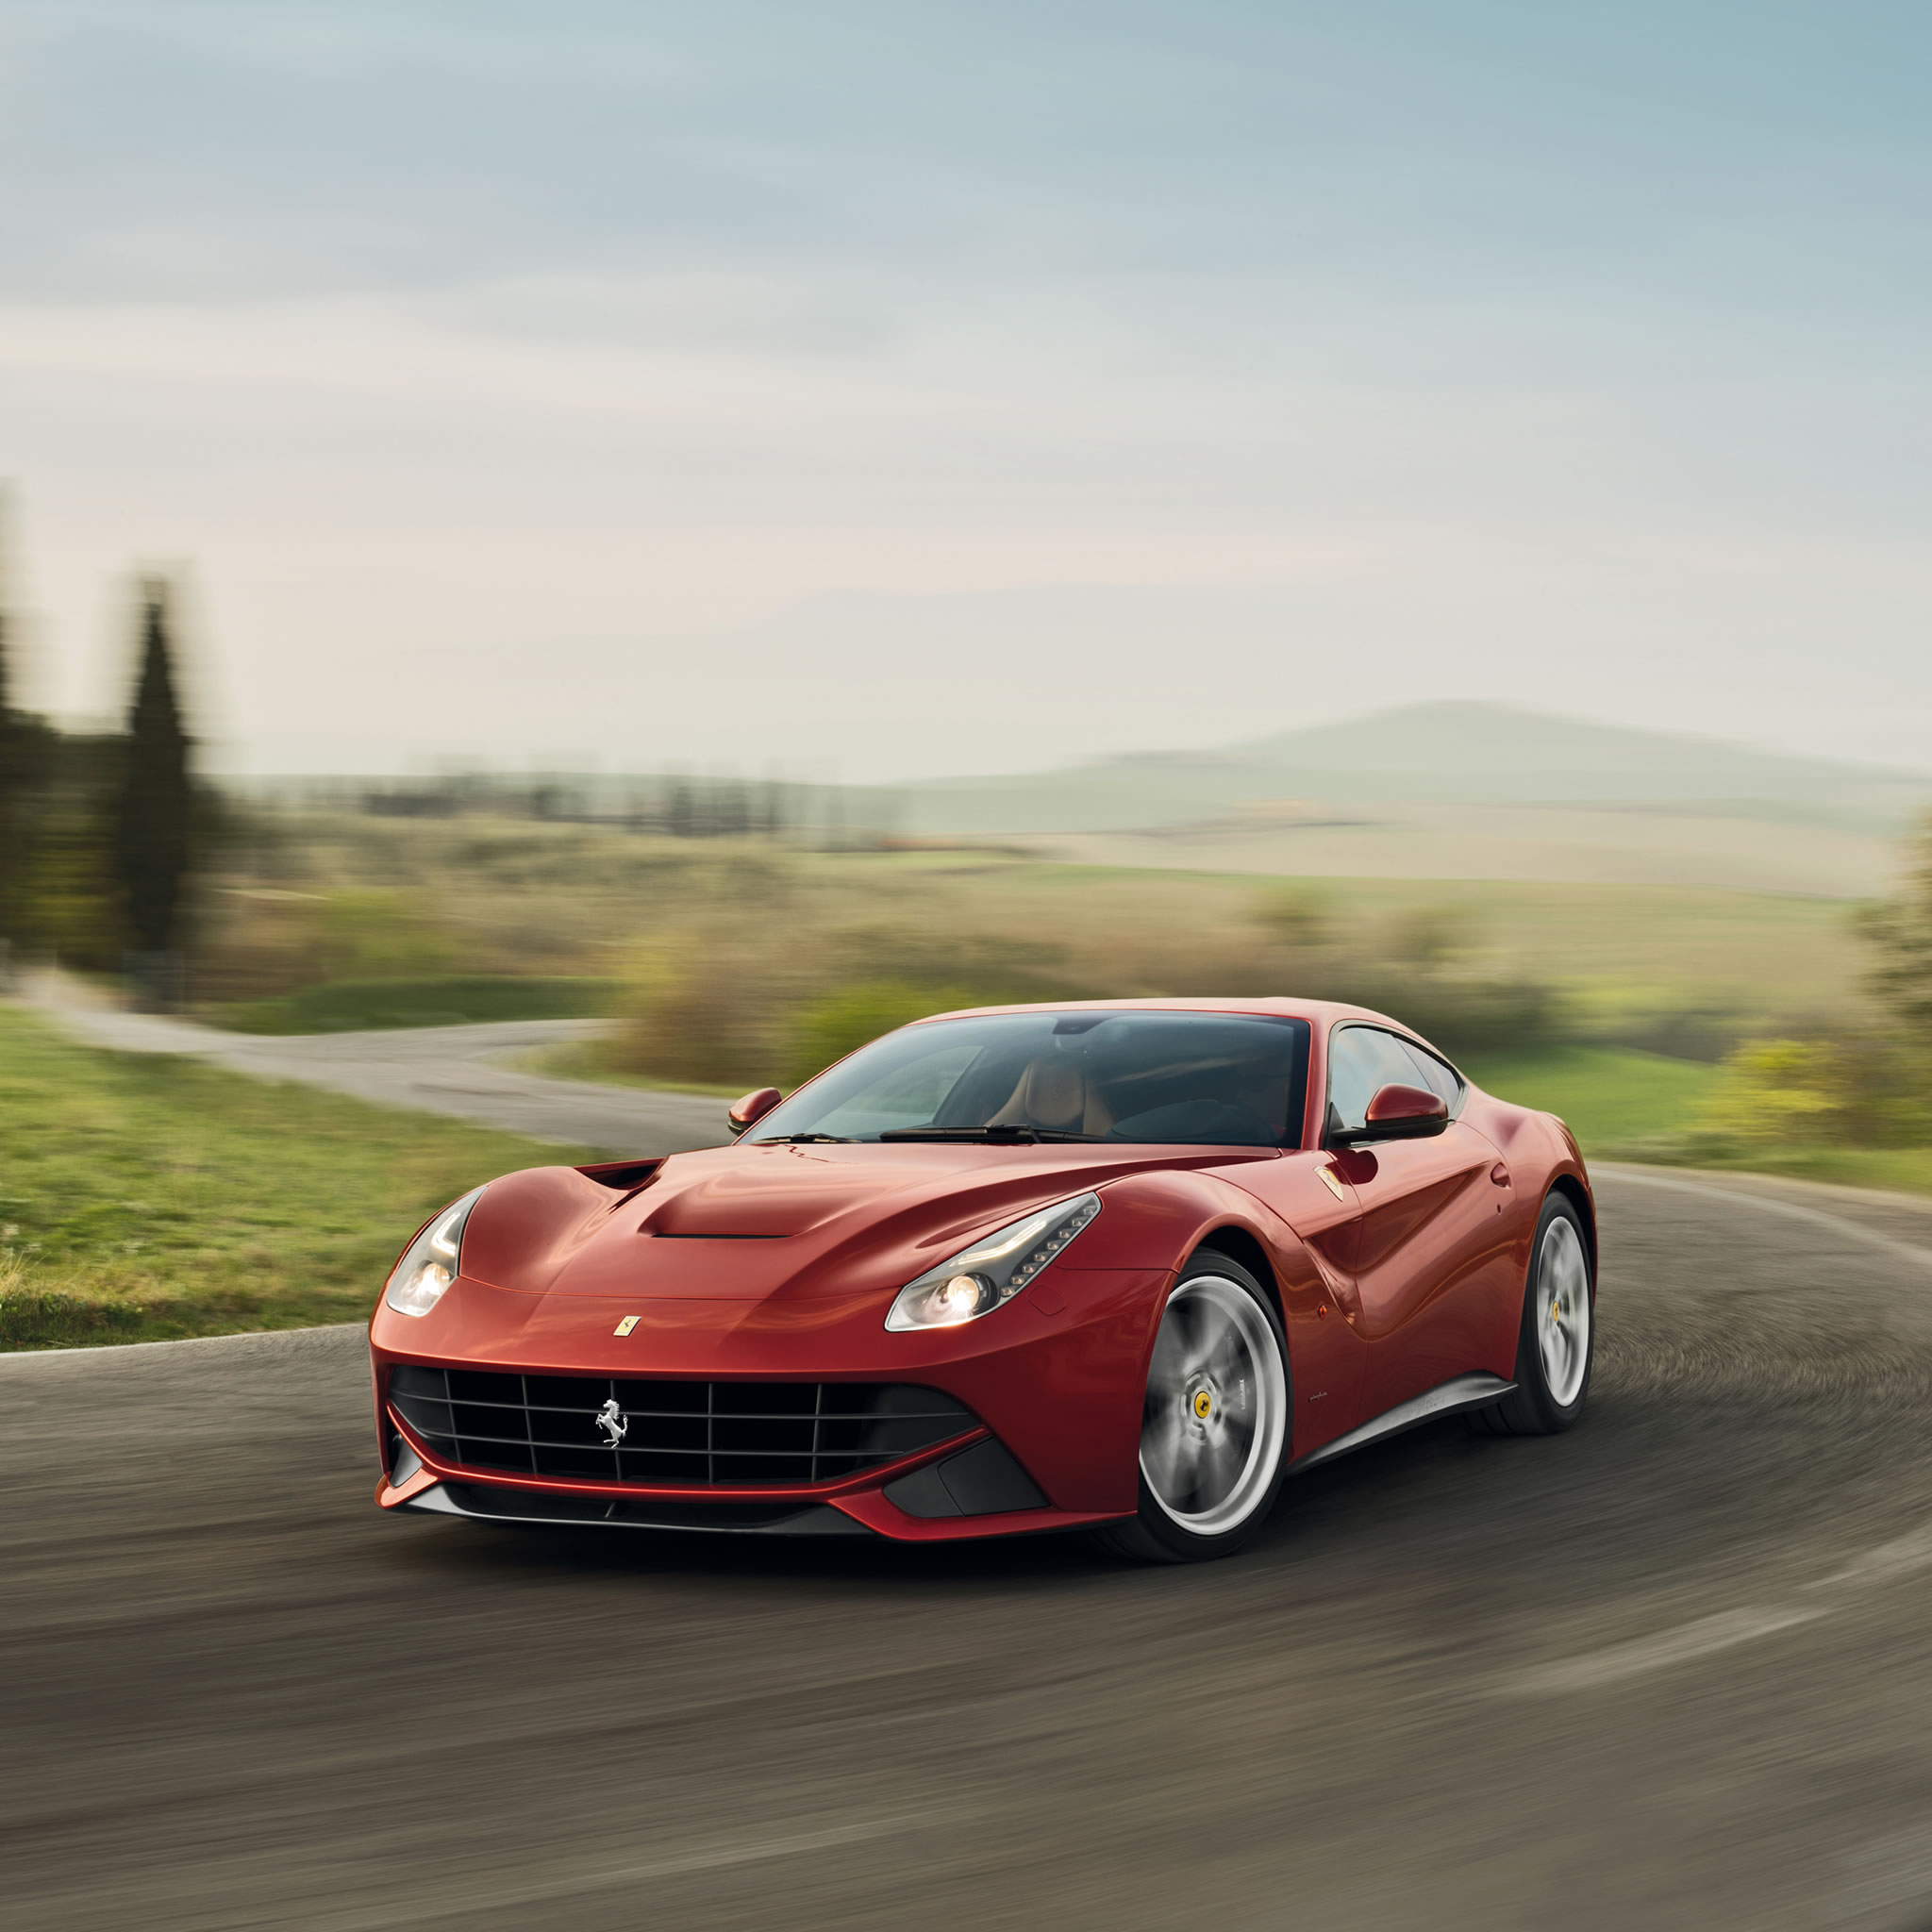 2014 Ferrari F12berlinetta Wallpaper